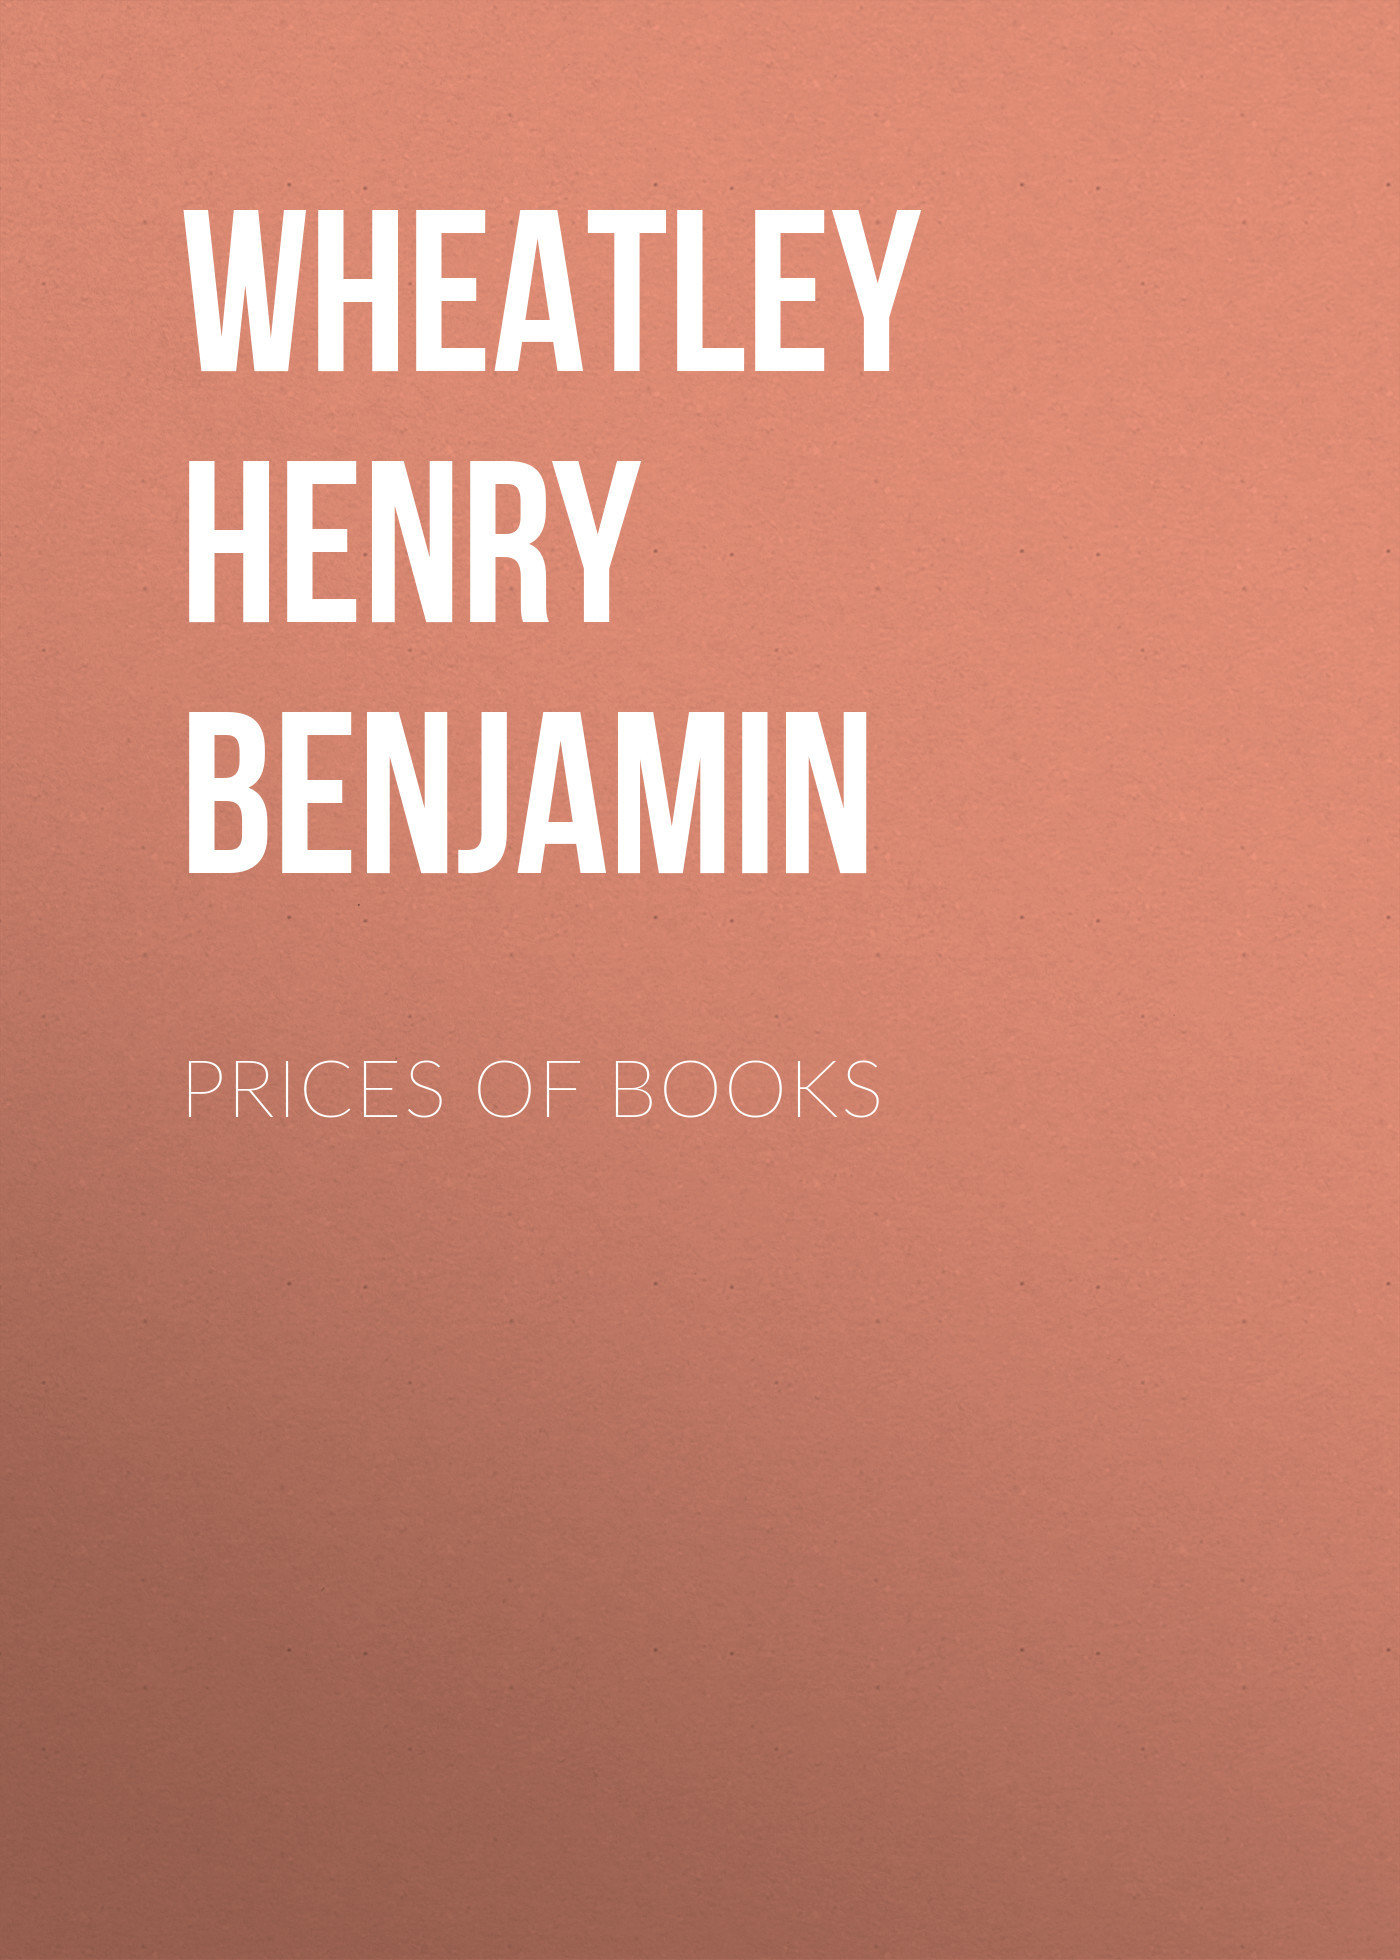 Prices of Books